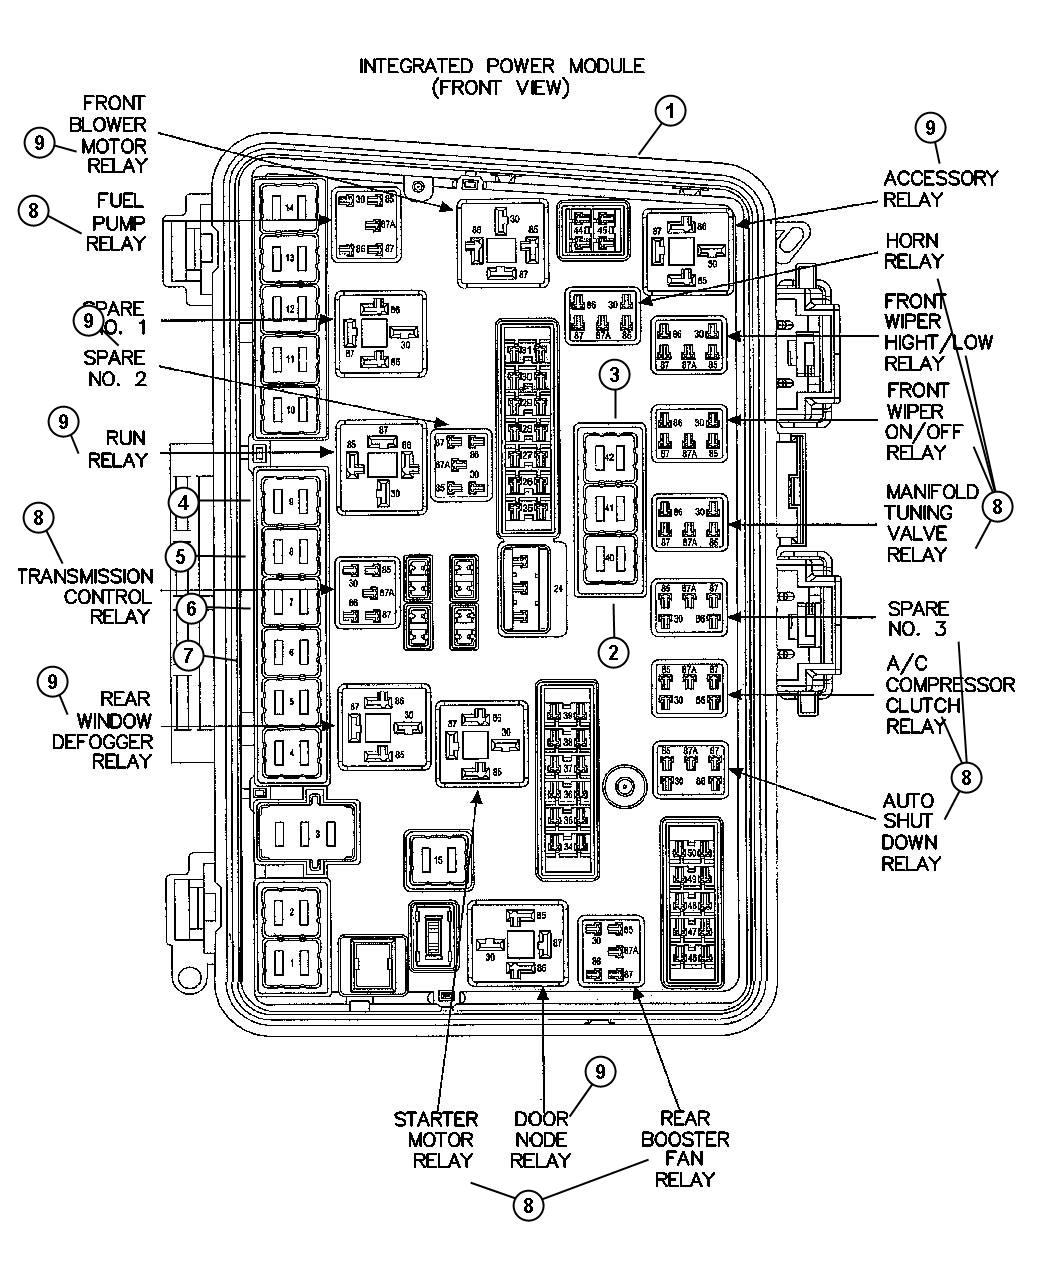 power distribution center relays and fuses